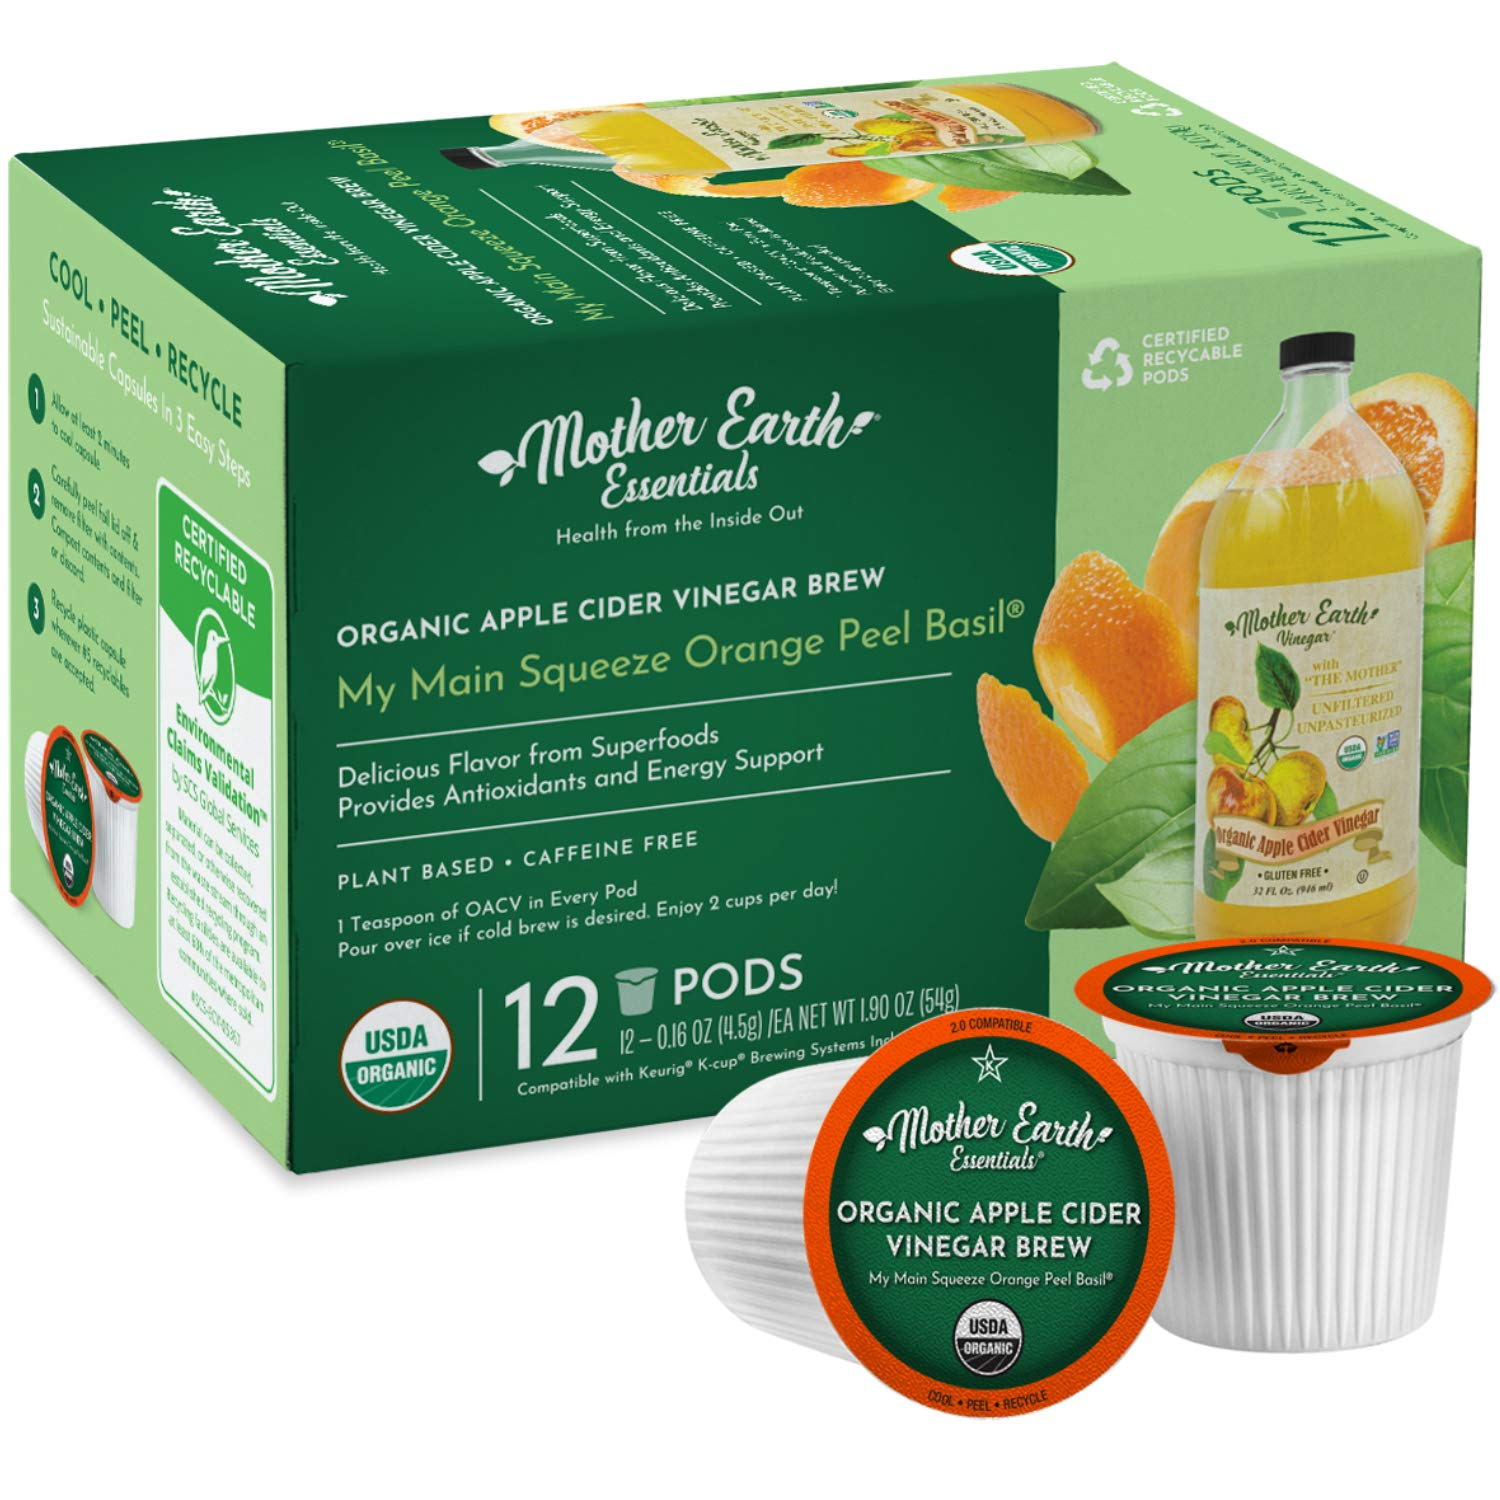 Mother Earth Essentials Superfood Tea MY MAIN SQUEEZE ORANGE PEEL BASIL infused with Organic Apple Cider Vinegar with The Mother. Your daily dose with fruit & herbs. Organic. (12 Single Serve Pods)